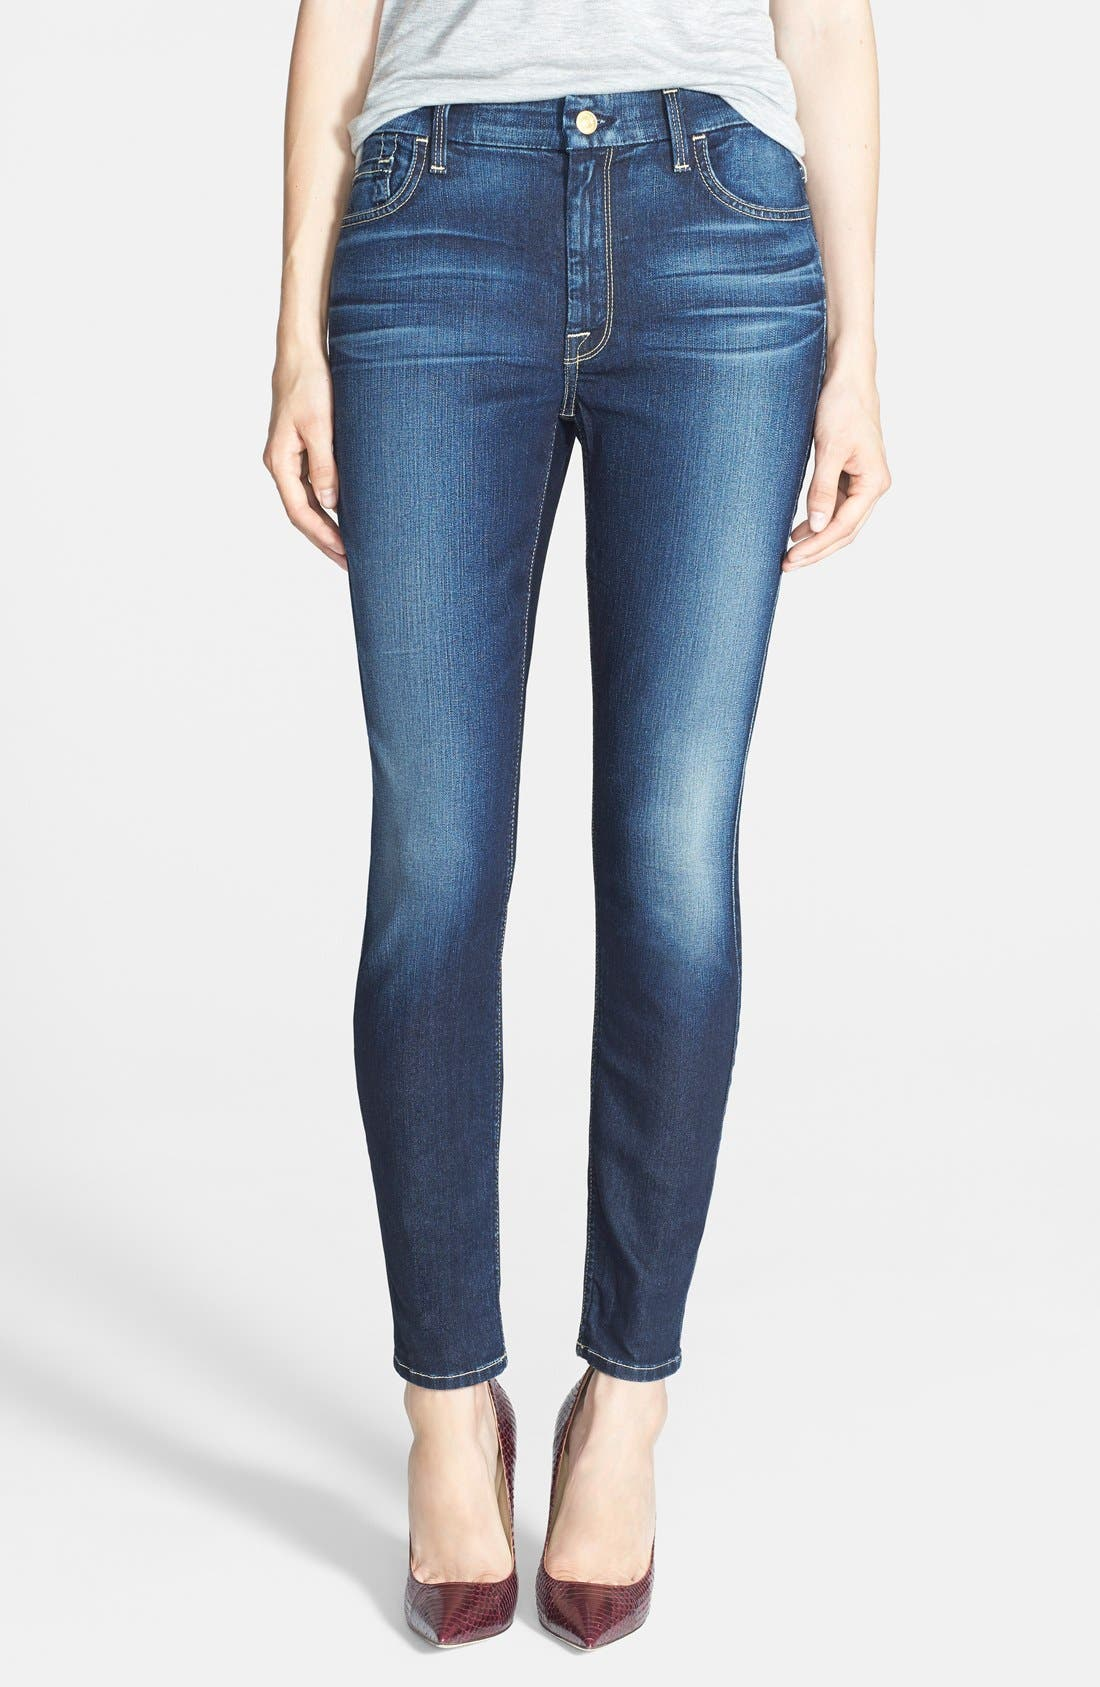 Alternate Image 1 Selected - 7 For All Mankind® High Rise Ankle Skinny Jeans (Riche Touch Medium Dark)